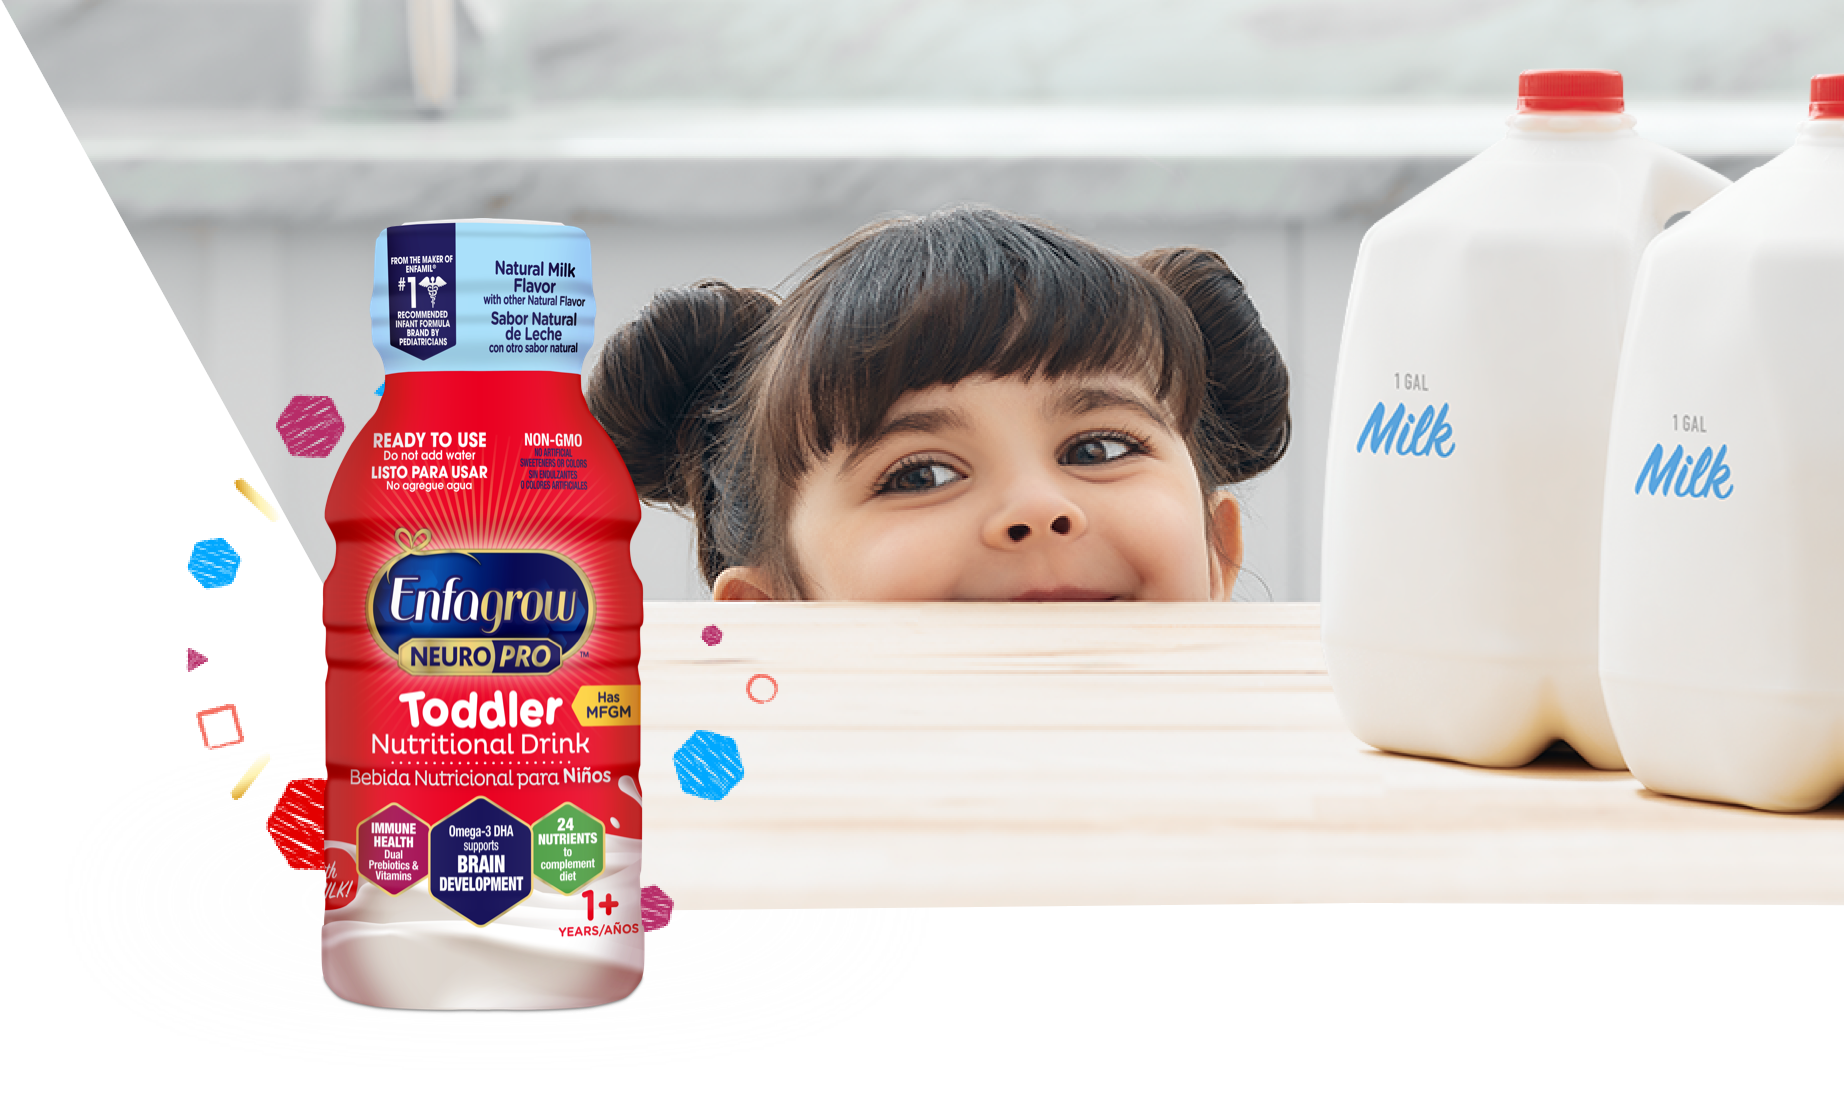 Toddler Excited for Enfagrow on Counter